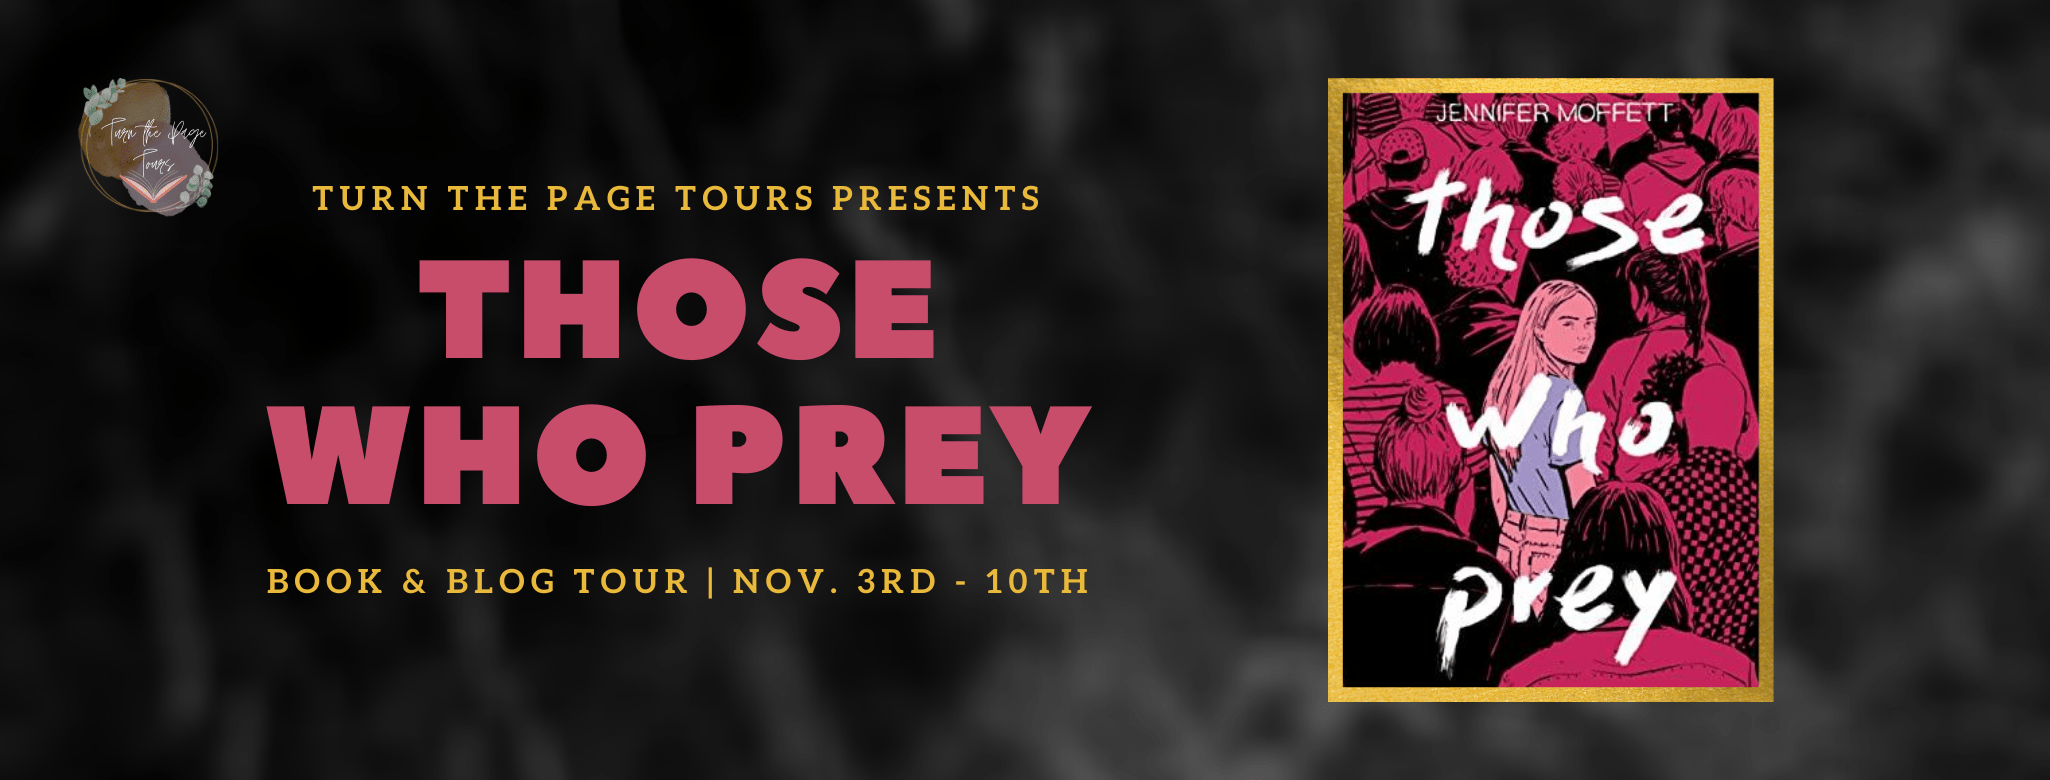 Blog Tour: Those Who Prey by Jennifer Moffett (Interview + Review + Giveaway!)